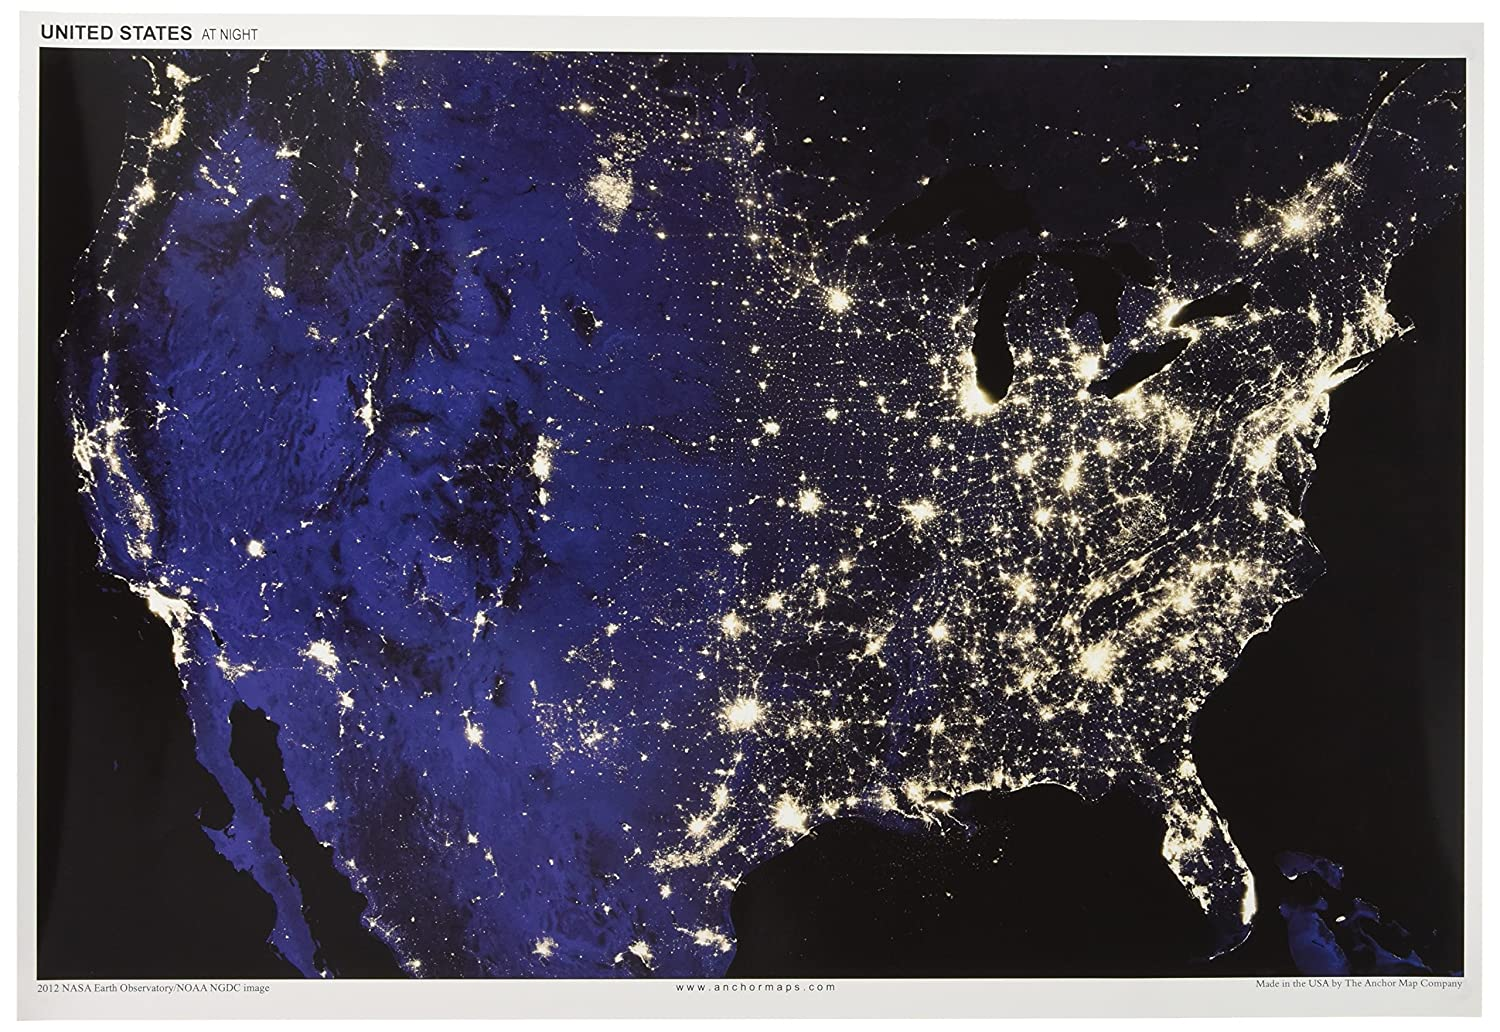 Amazon.com : 13x19 Anchor Maps United States at Night Poster ...